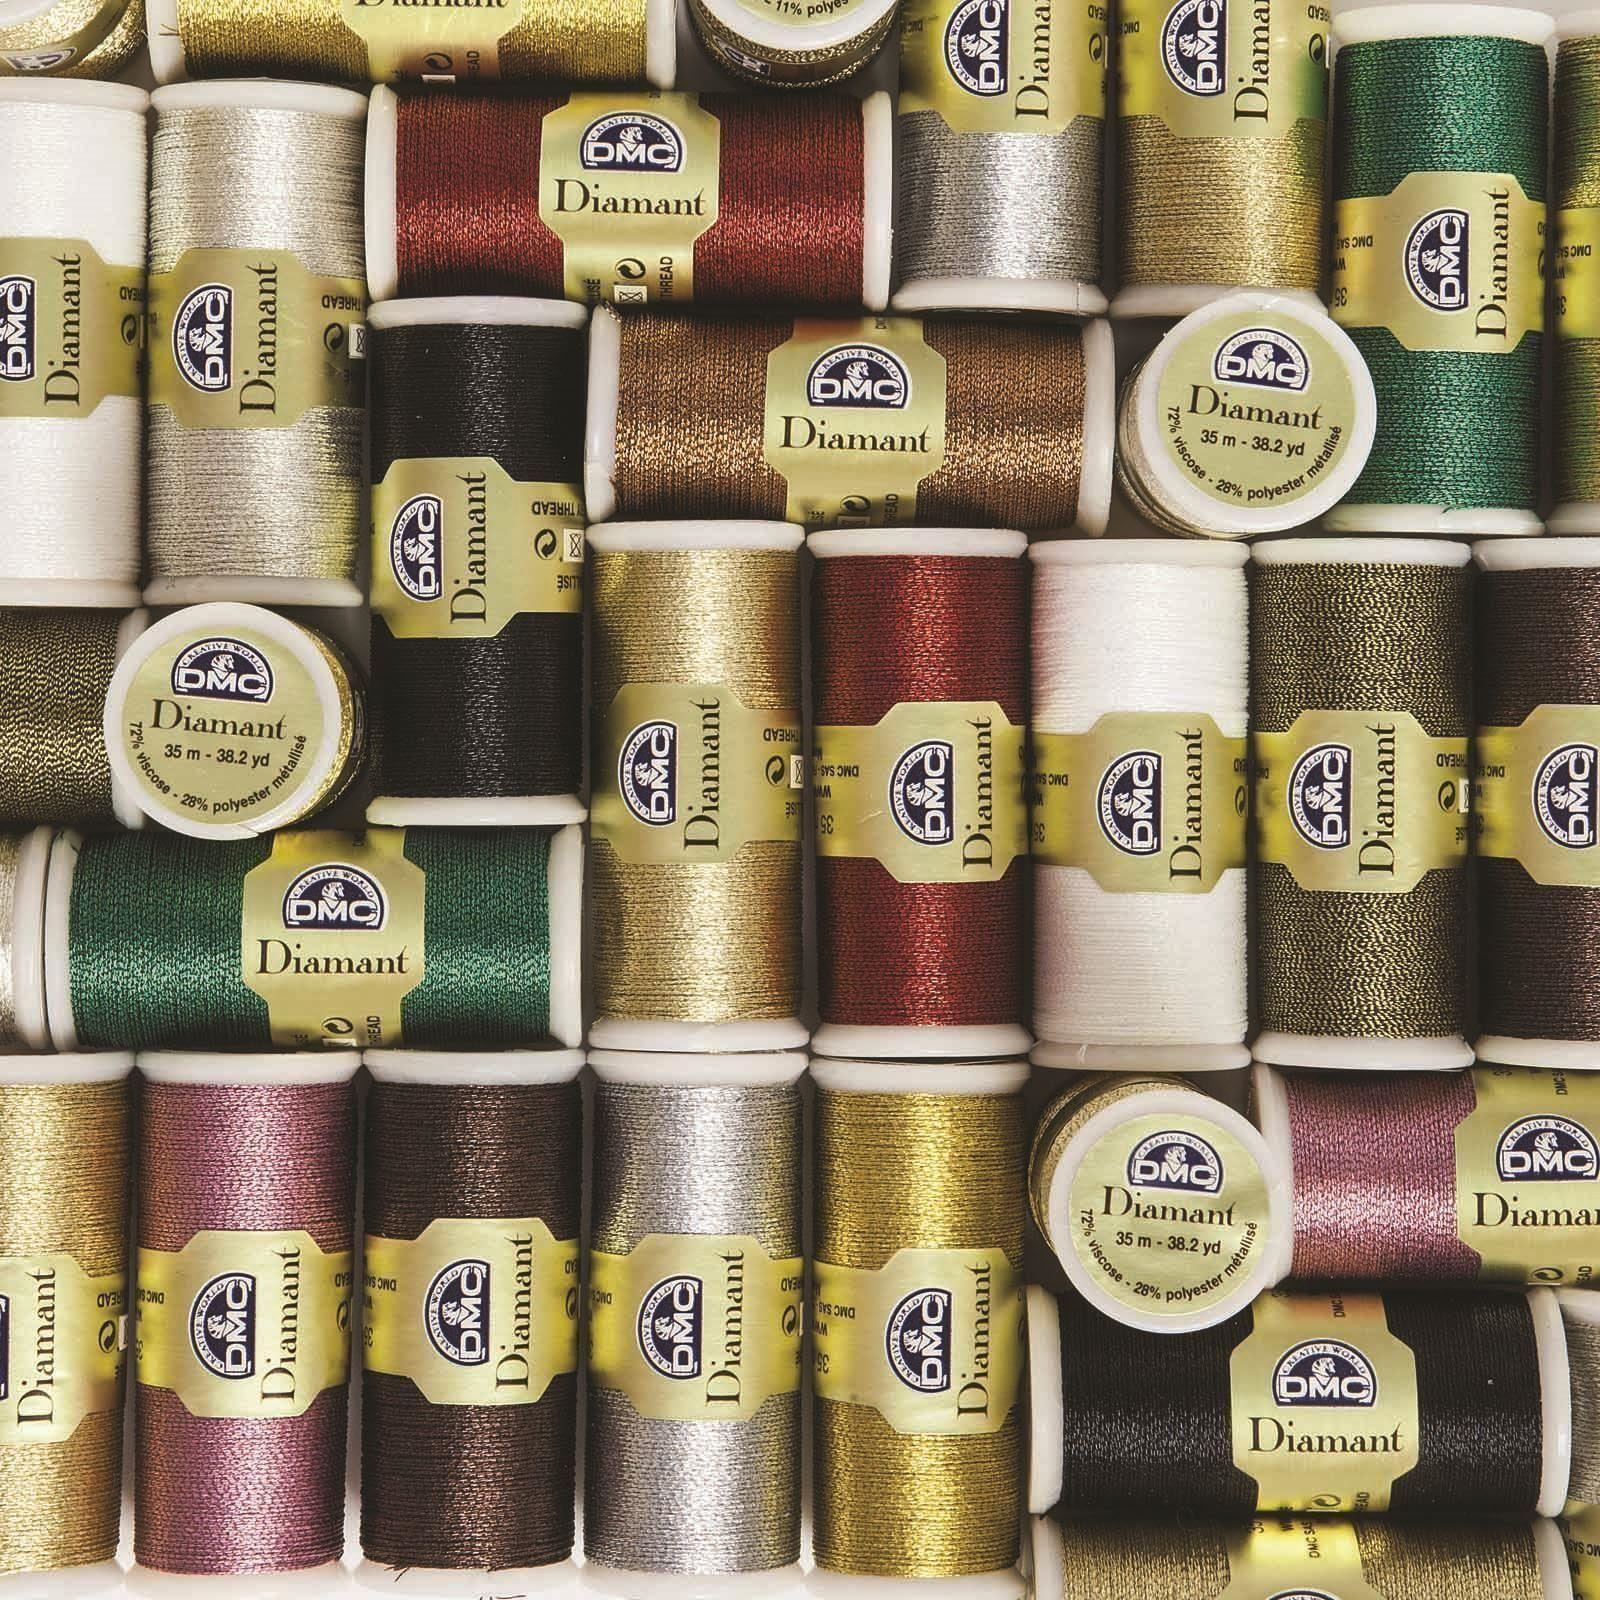 DMC-Diamant-Metallic-Embroidery-Thread-35m-Spool-Cross-Stitch thumbnail 44